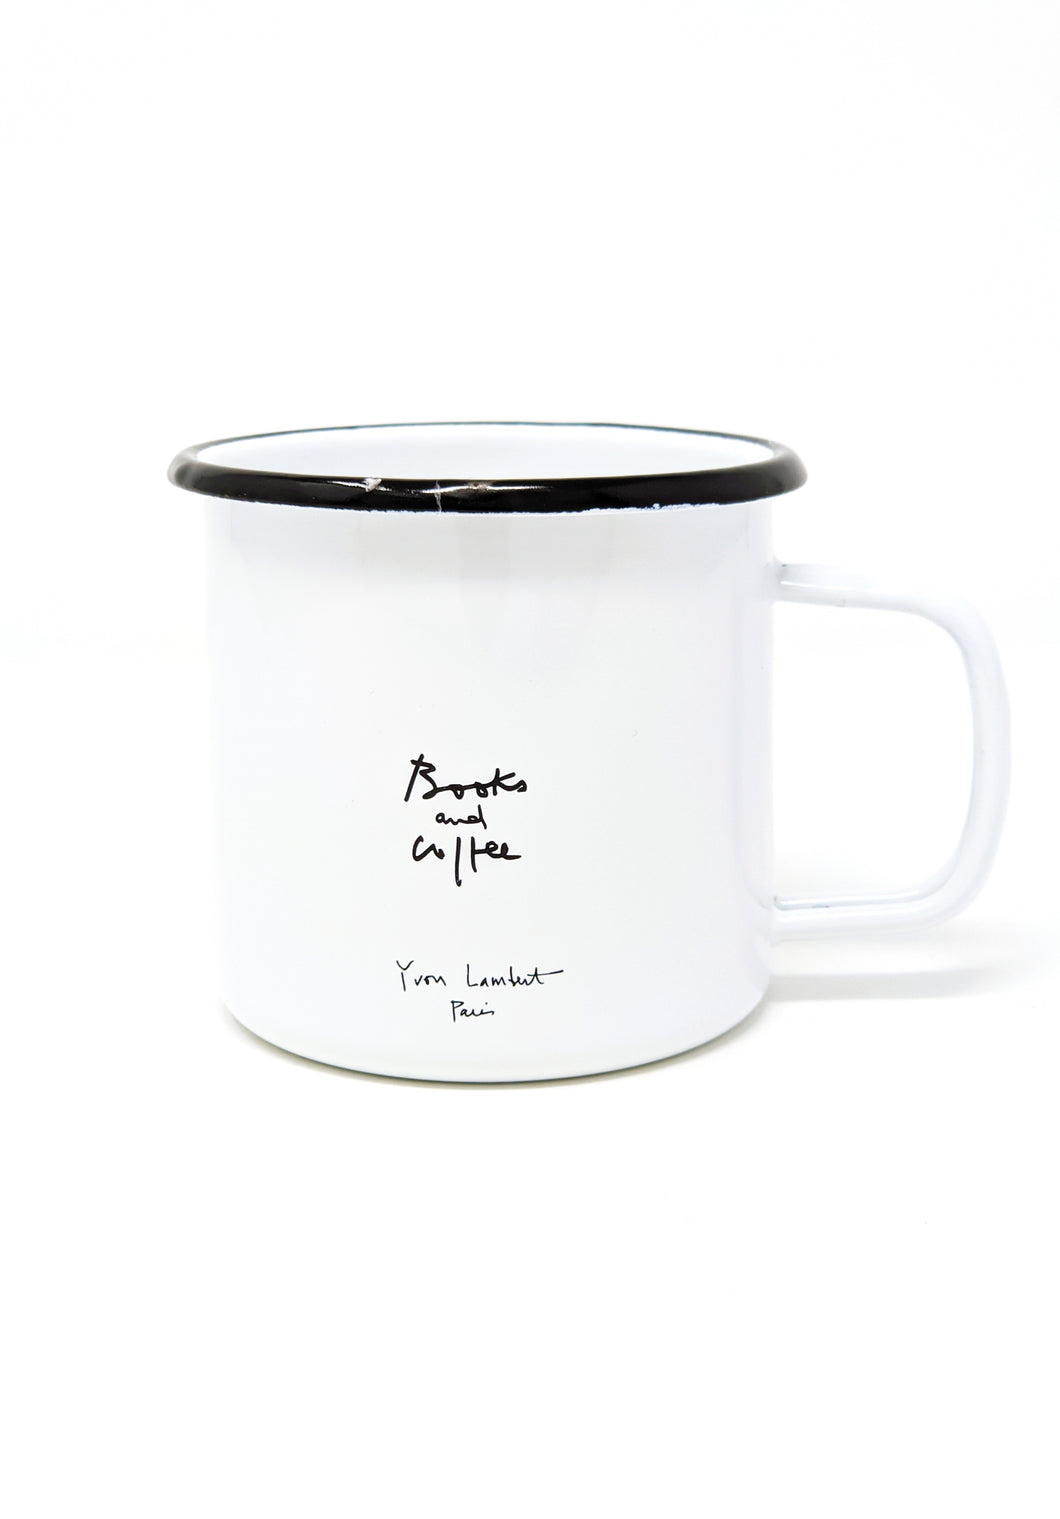 Yvon Lambert Books and Coffee mug